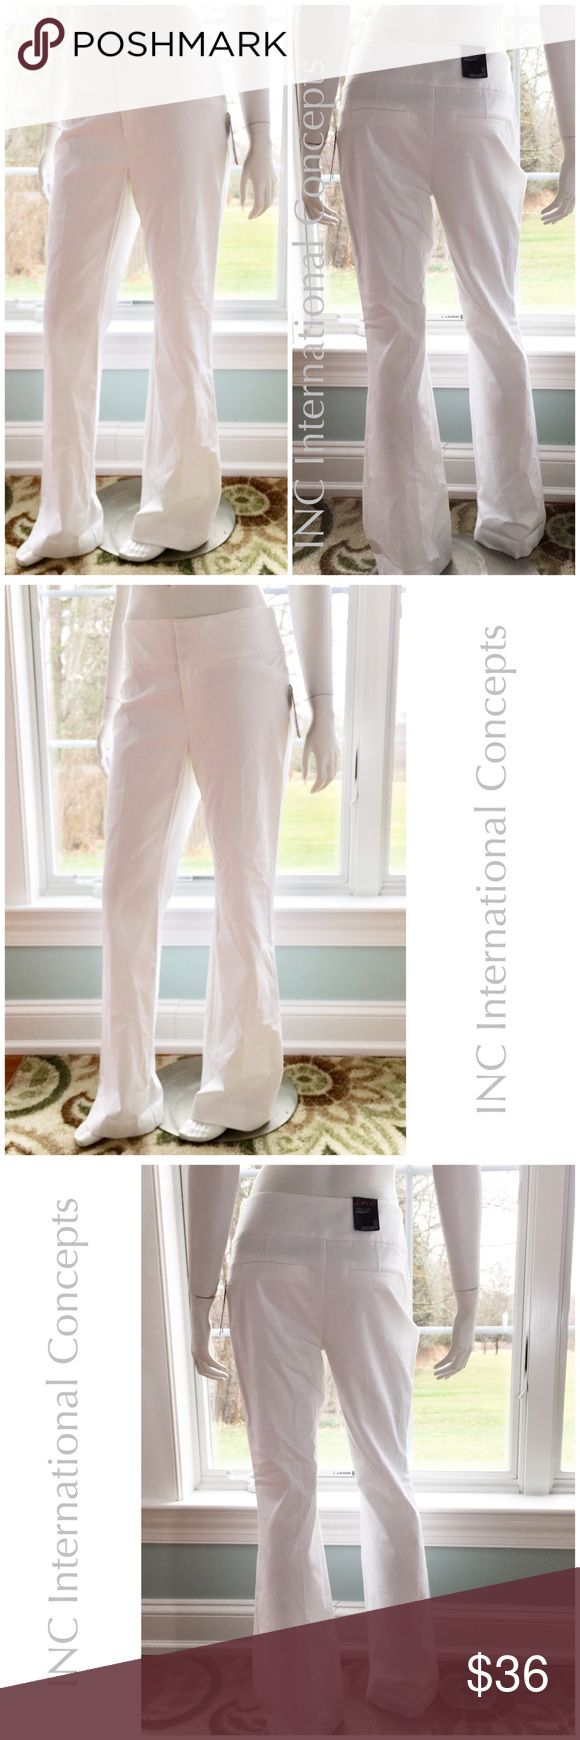 """NEW INC white stretch dress wide leg regular fit 6 57% cotton, 37% rayon, 6% spandex gives these ladies belt white stretch wide leg dress pants a nice contouring fit. Waist measures 15.5"""" across, 9.5"""" rise, 33"""" inseam, and 10.5"""" across at cuff. Retail $69.50. Please visit my closet for many new with tags opportunities for bundling and filling out your summer wardrobe! INC International Concepts Pants Wide Leg"""